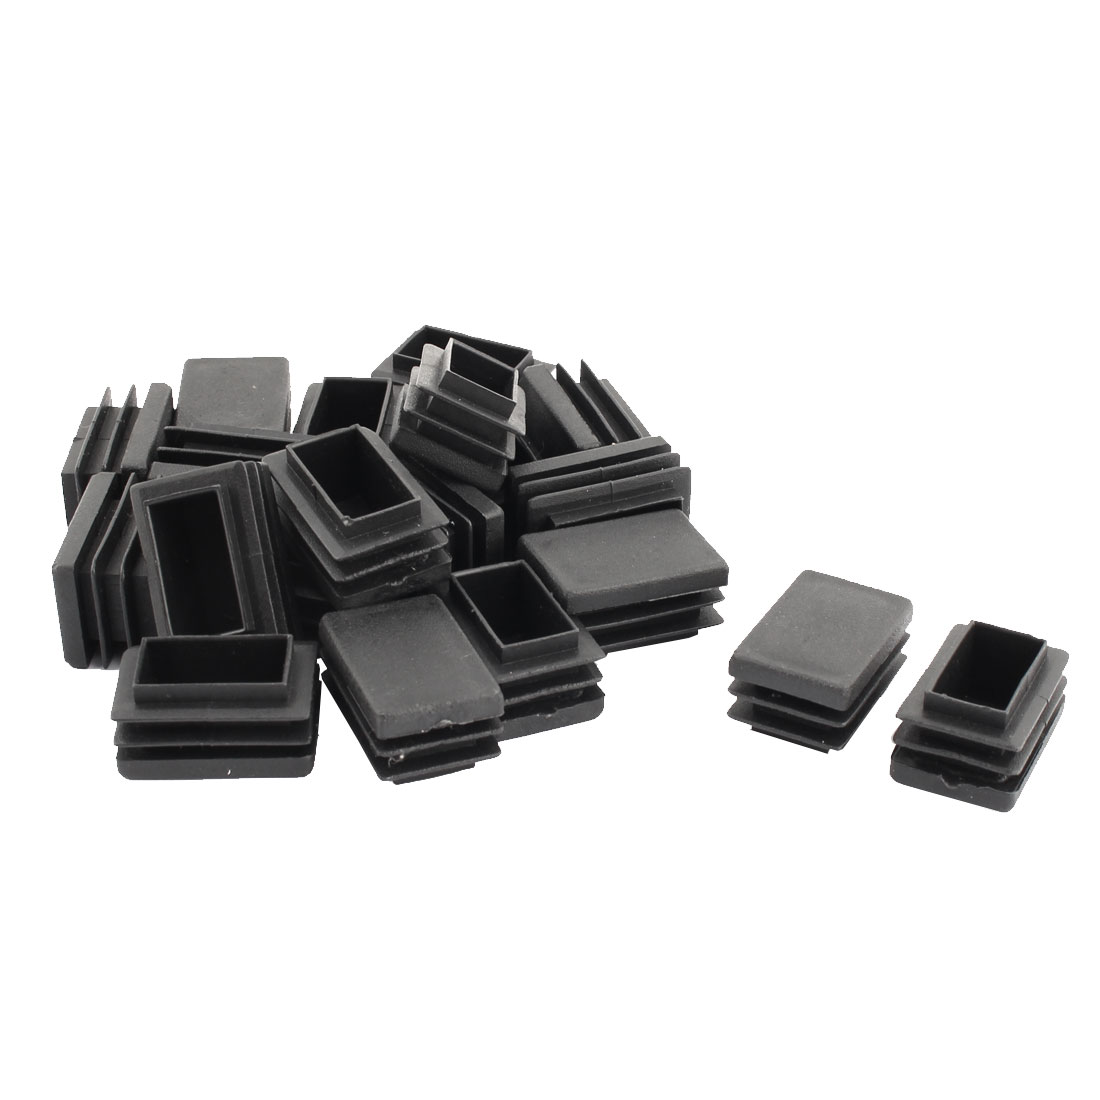 Home Office Plastic Rectangle Table Cabinet Legs Protecter Tube Insert Black 30 x 20mm 20 Pcs